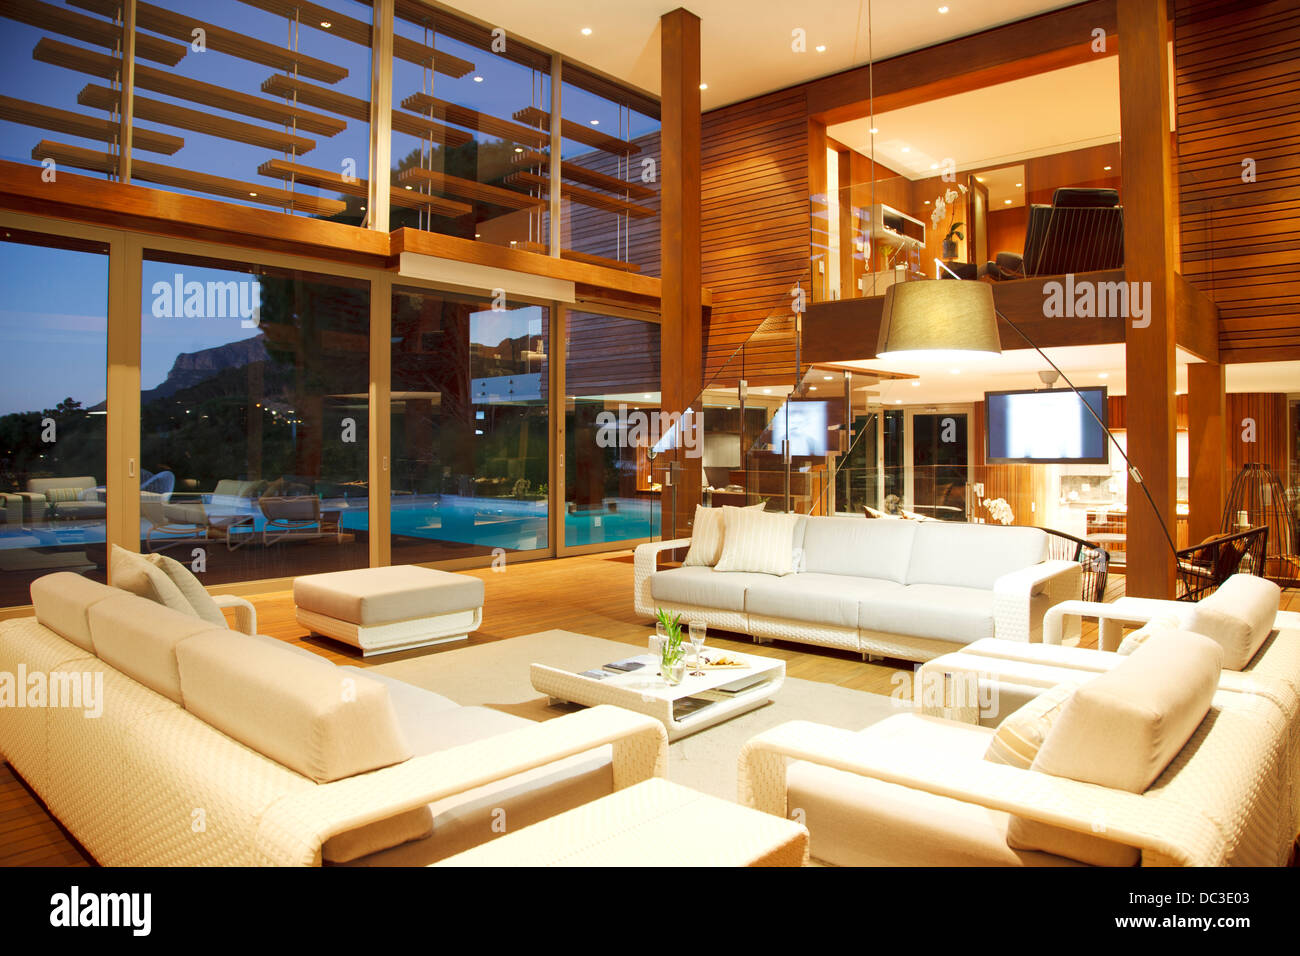 Illuminated Modern Living Room At Night Stock Photo Alamy